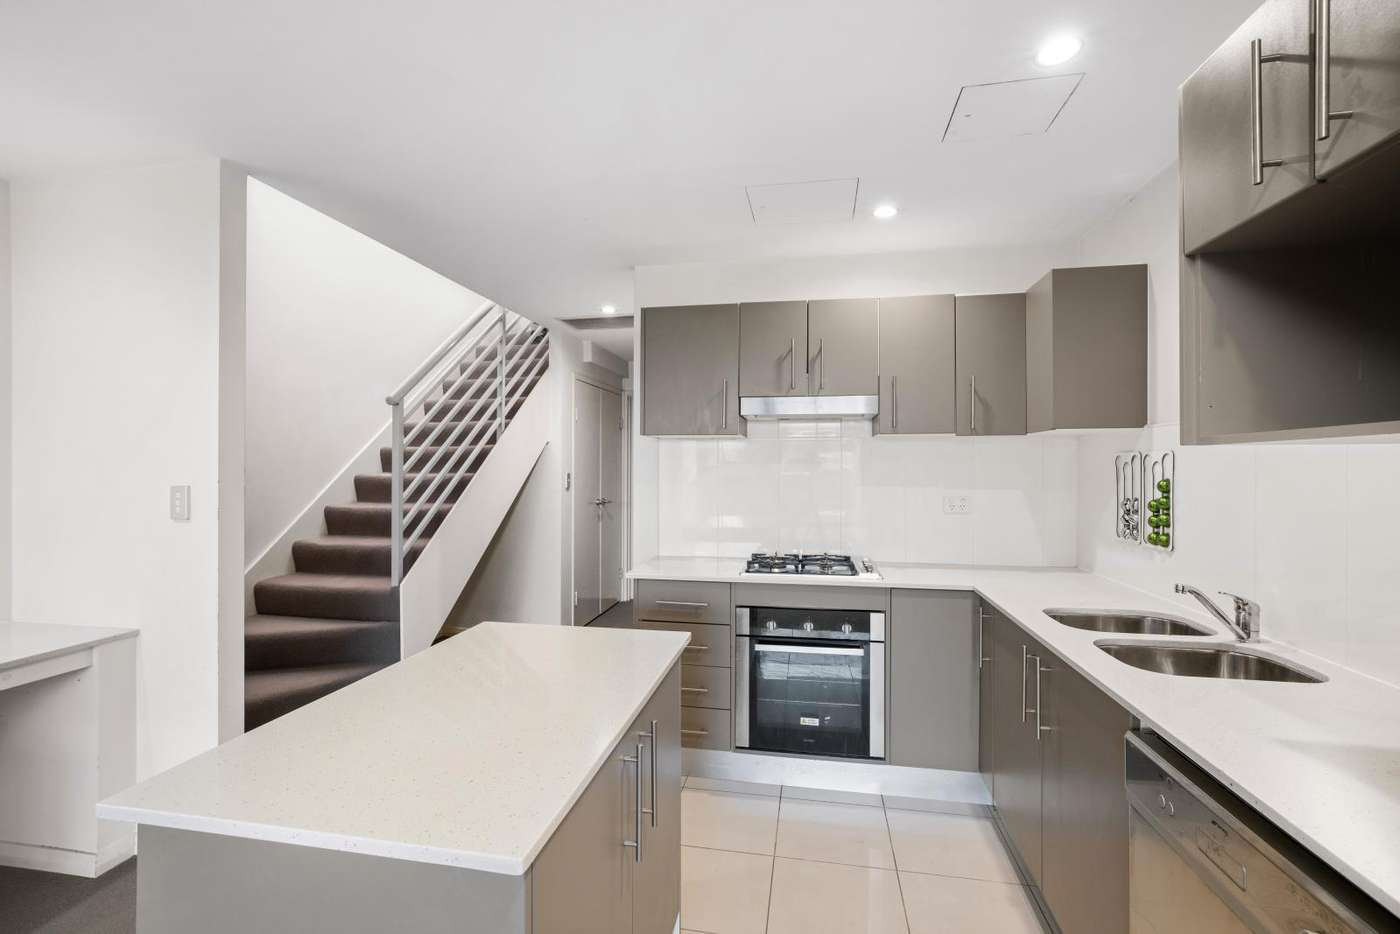 Main view of Homely apartment listing, 32/109-123 O'Riordan Street, Mascot NSW 2020